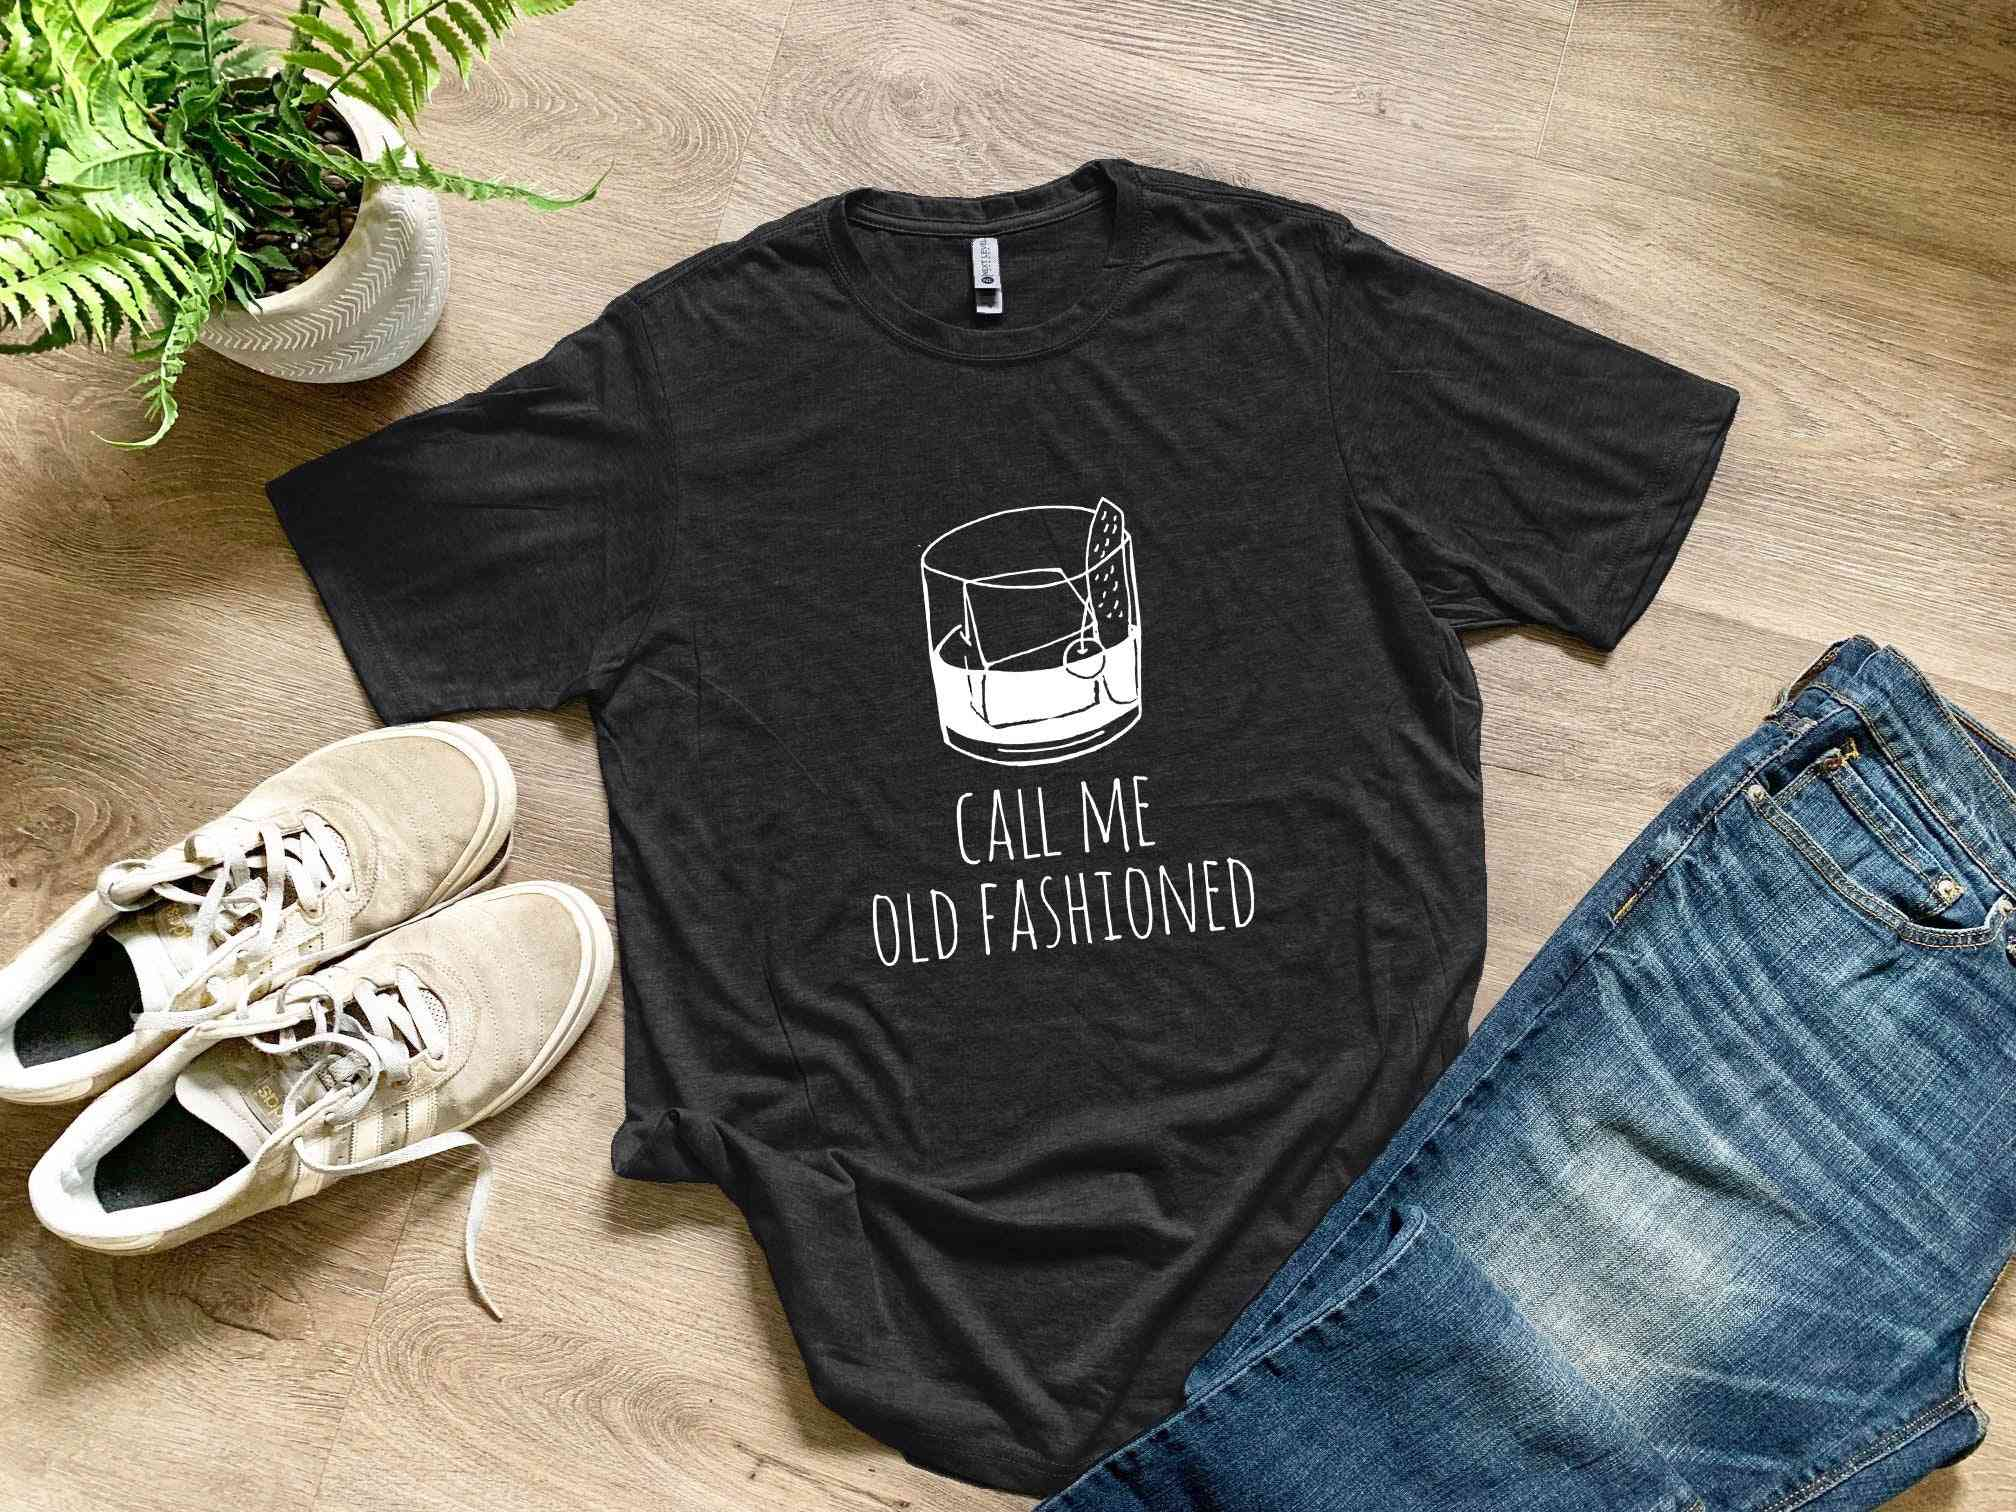 Call Me Old Fashioned - Men's Tee